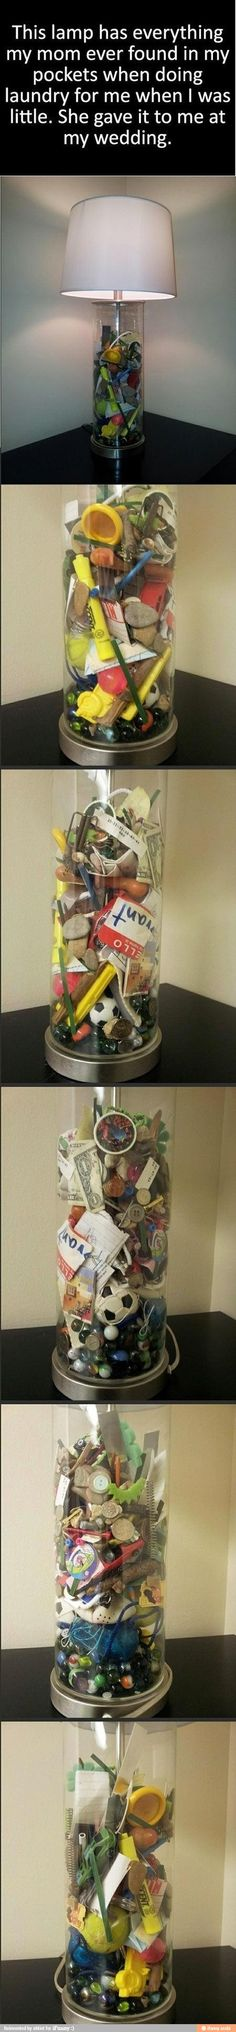 What a cute idea for any1 who has young kids & can begin saving the items! ... i found this on iFunny :)